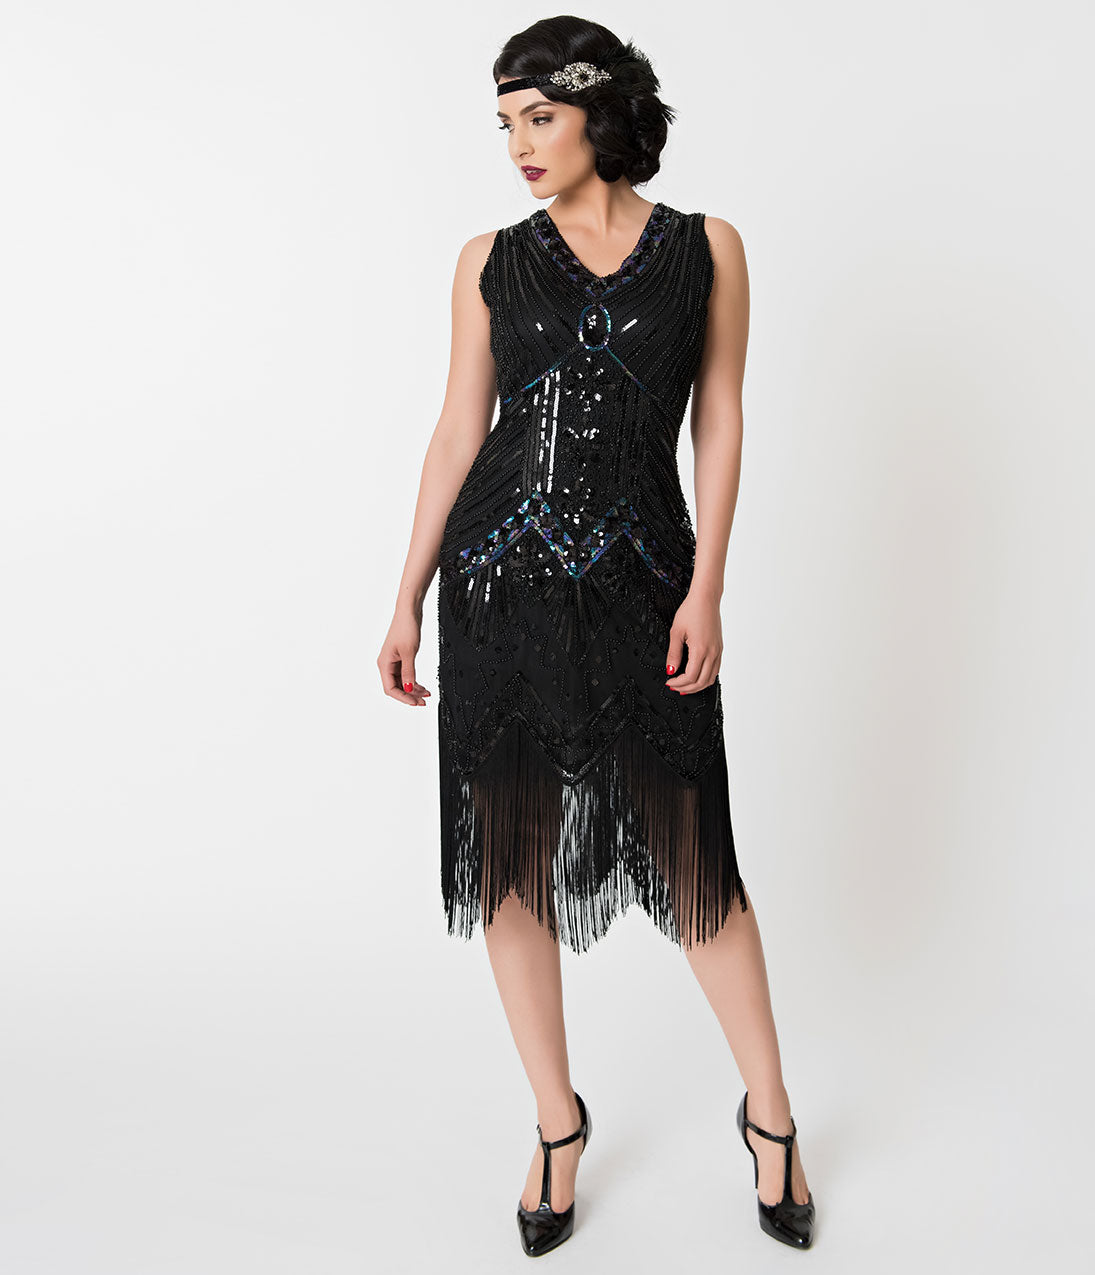 1920s Evening Dresses & Formal Gowns Unique Vintage 1920S Deco Black Iridescent Sequin Veronique Fringe Flapper Dress $51.00 AT vintagedancer.com